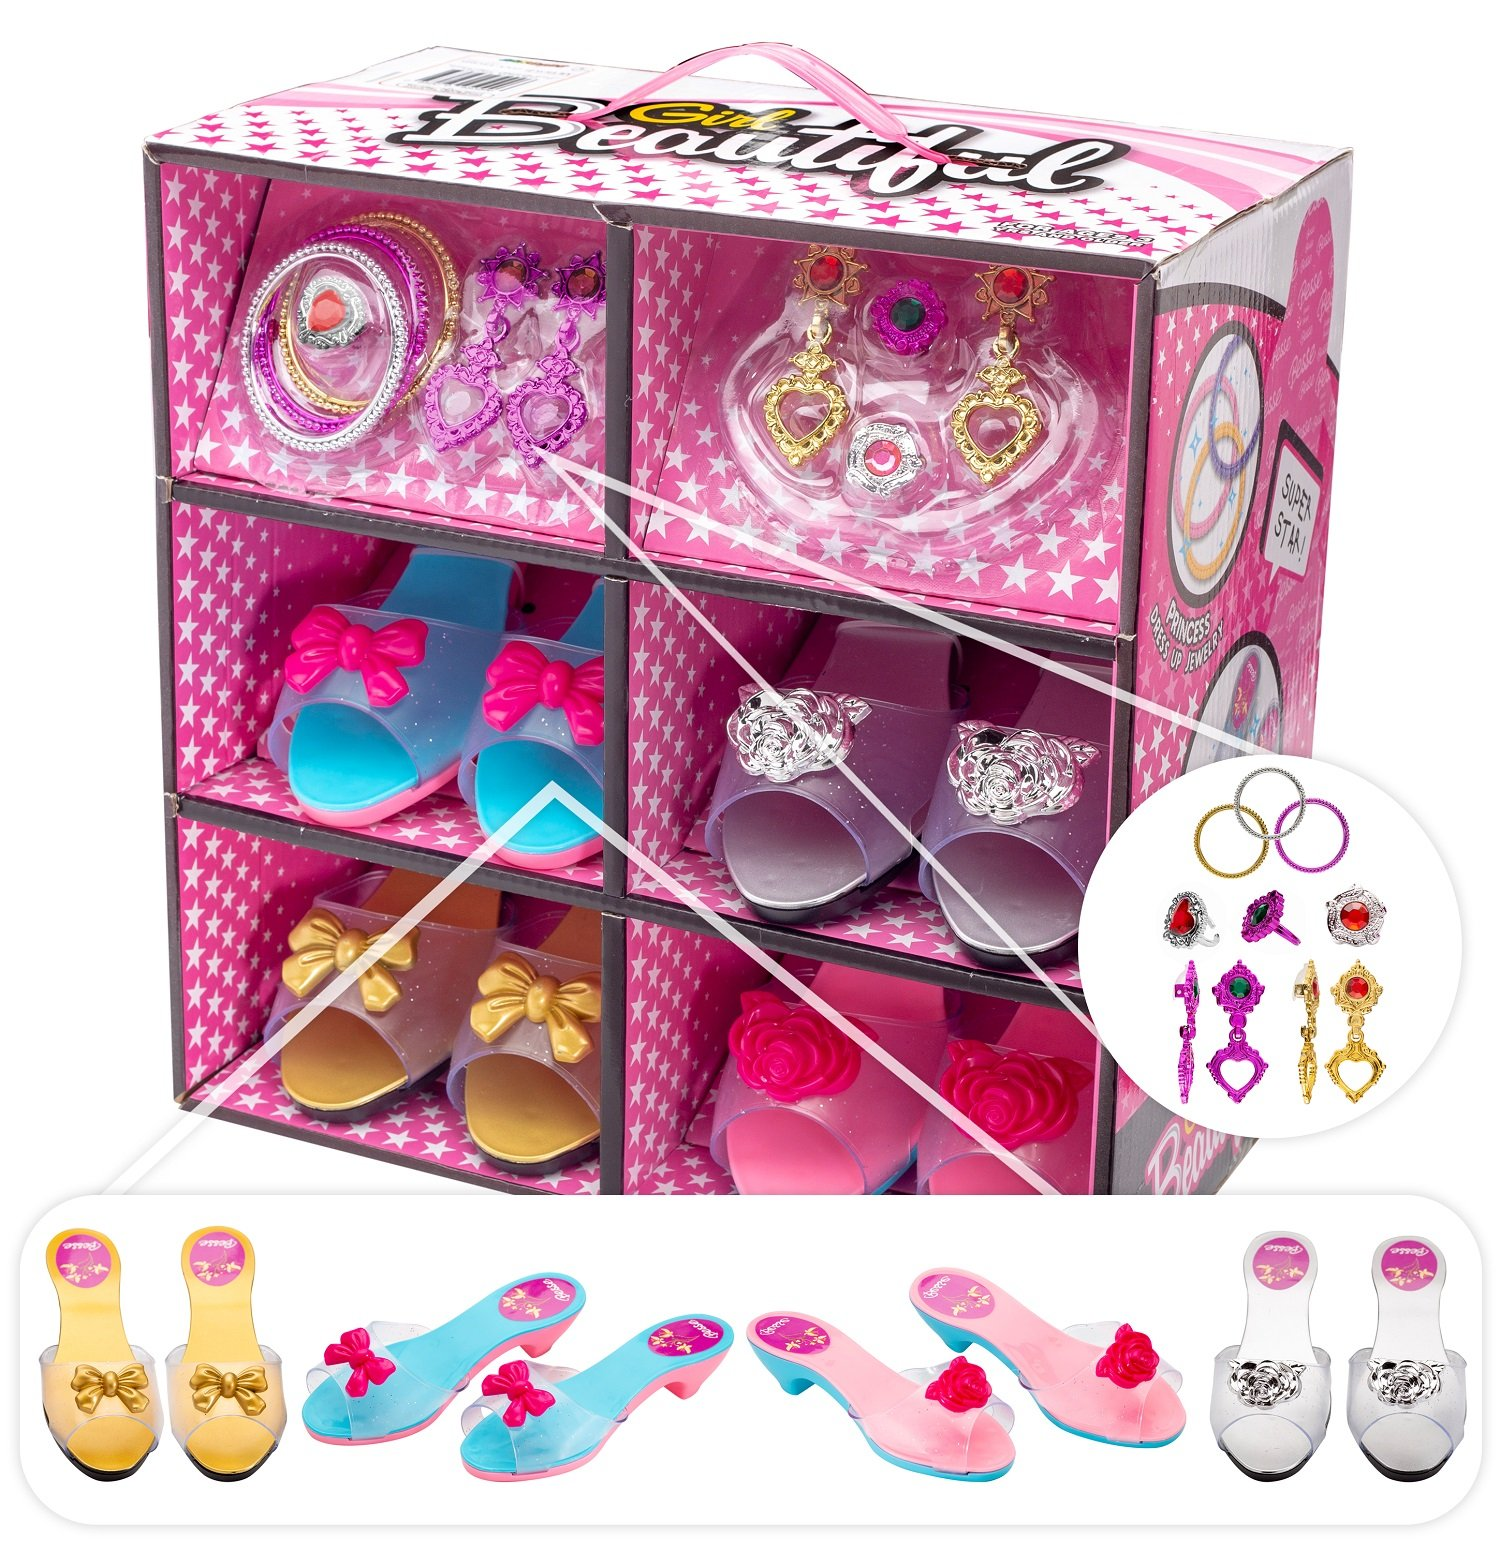 Shoes and Jewelry Boutique – Little Girl Princess Play Gift Set with 4 Pairs of Shoes, Collection of earrings, bracelets rings – Great for Dress Up & Group Play – Recommended Ages 3+